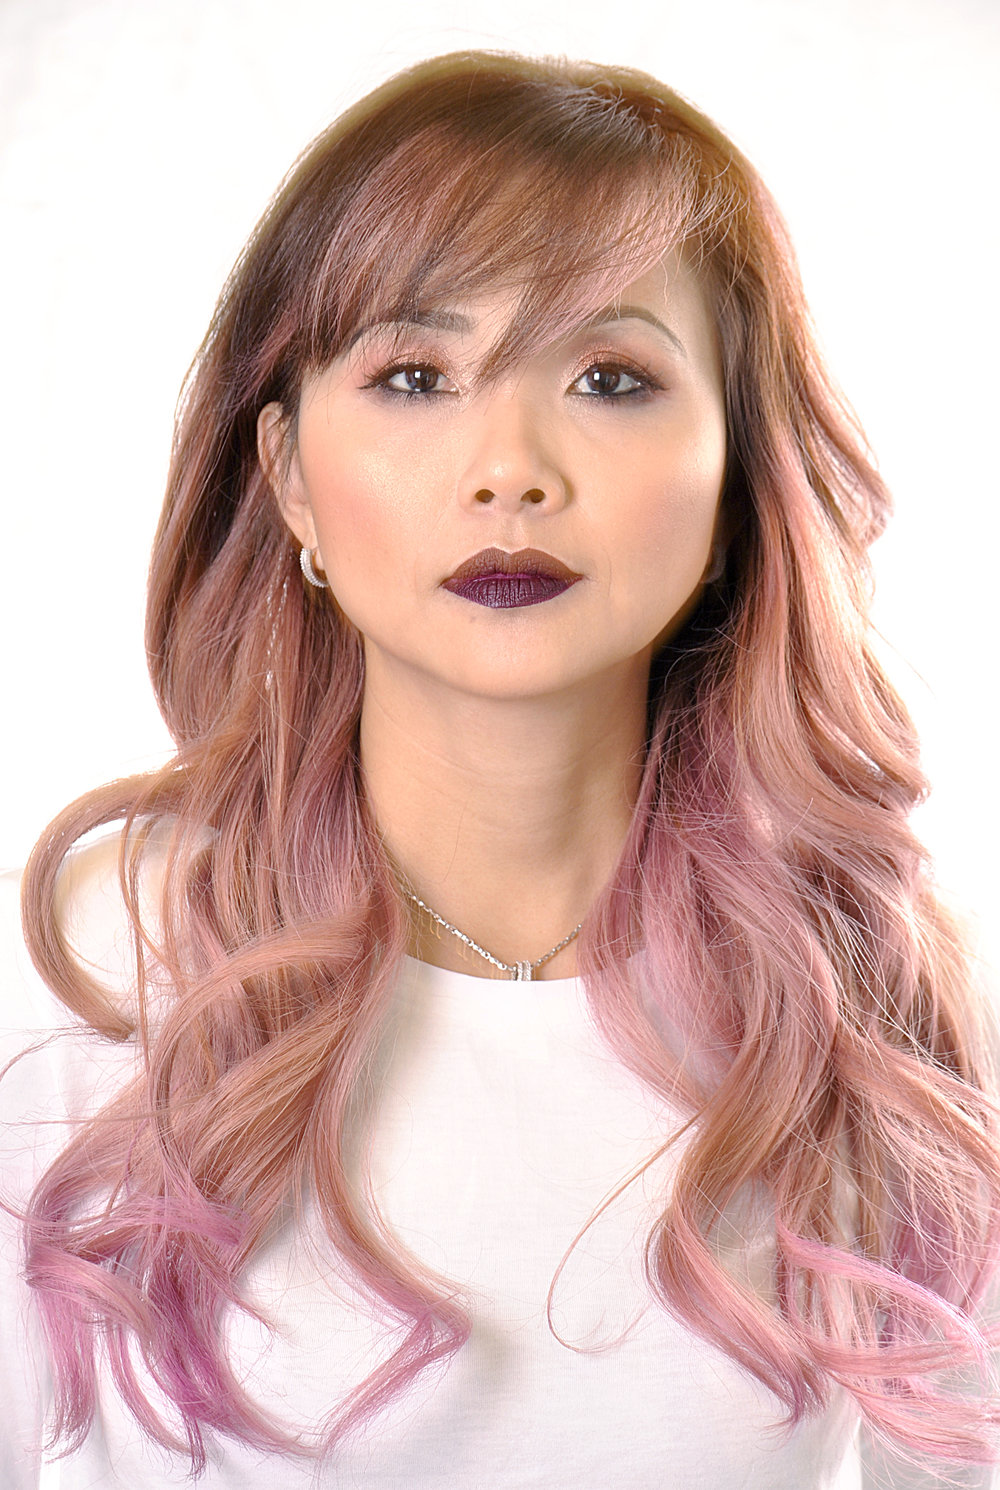 Mermaid Makeover From Melted Dark Rosy To Peach And Cotton Candy Pink.